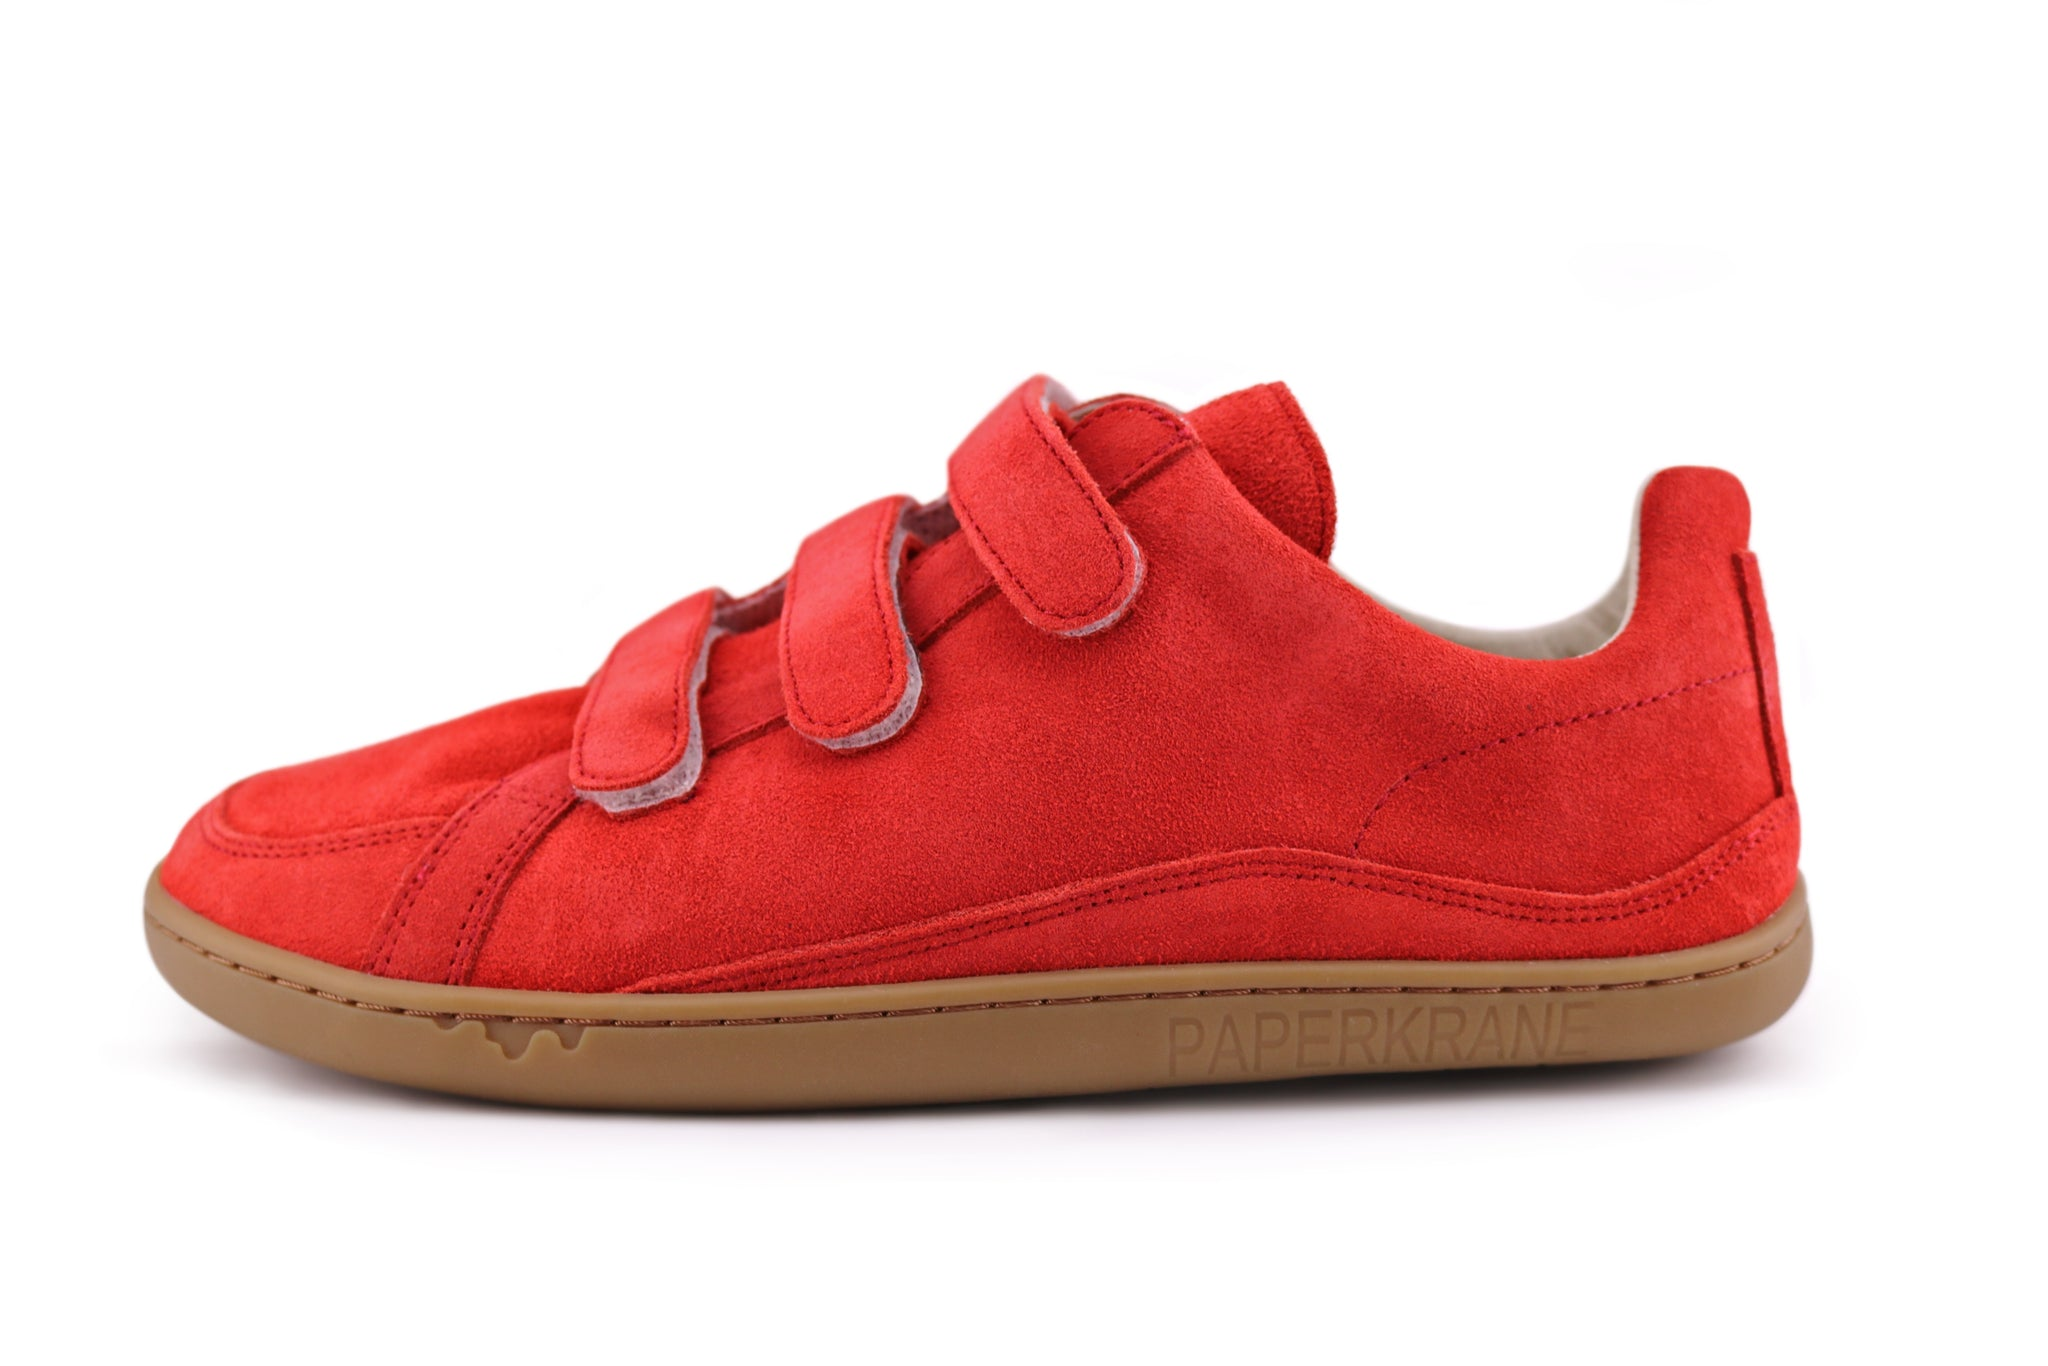 Red suede PaperKrane velcro shoe side view